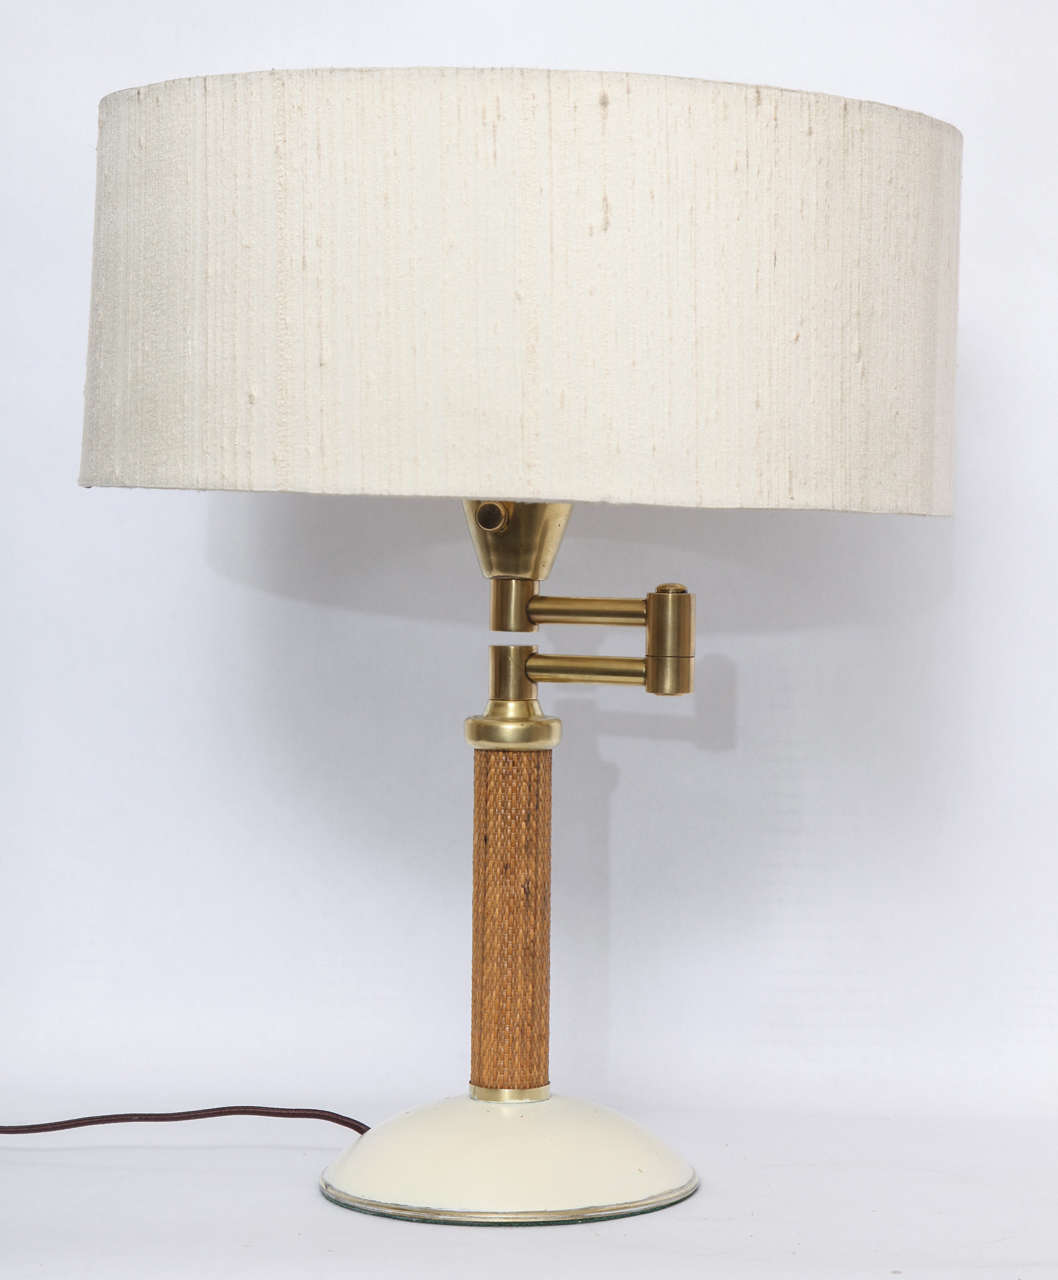 1930s American Modernist Articulated Table Lamp Attributed to Kurt Versen 2